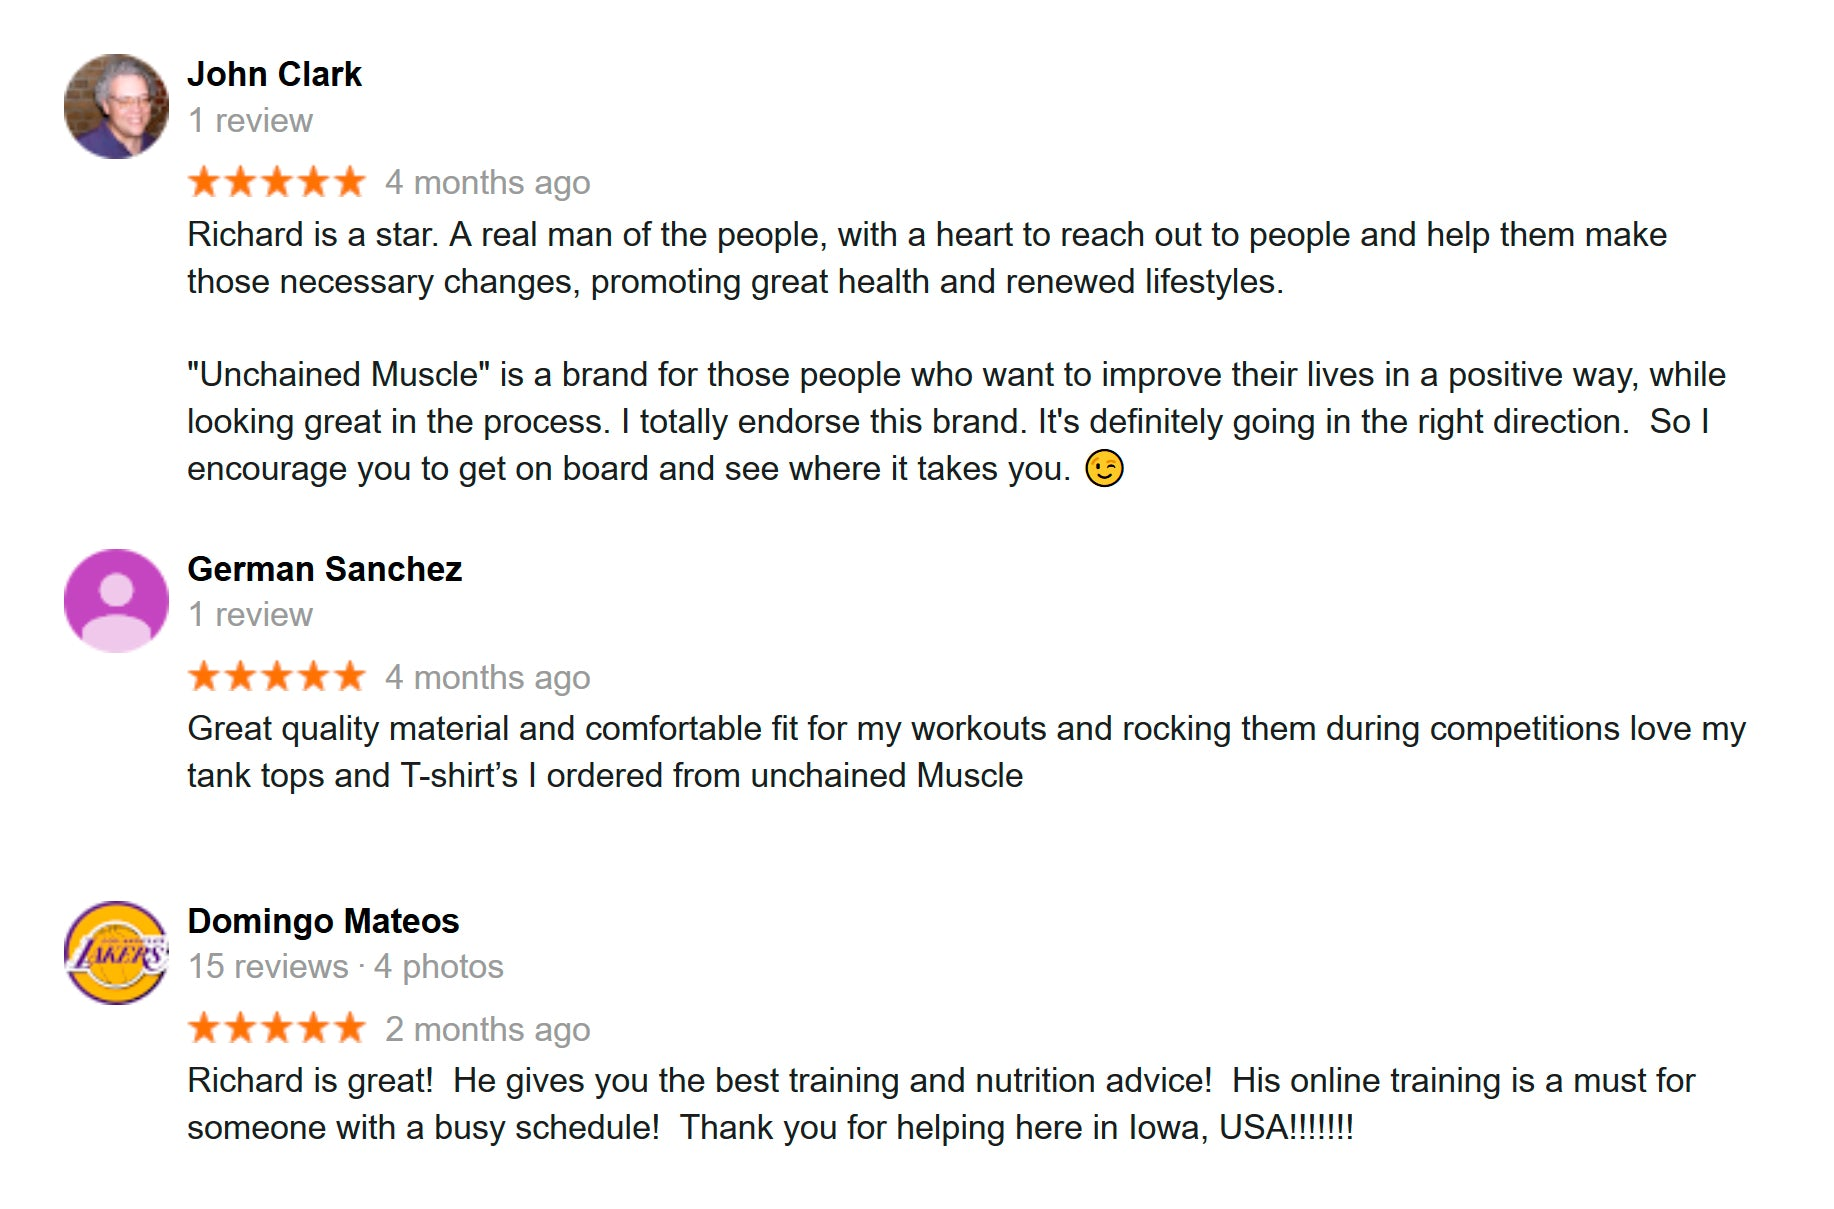 Unchained Muscle Reviews and Testimonials